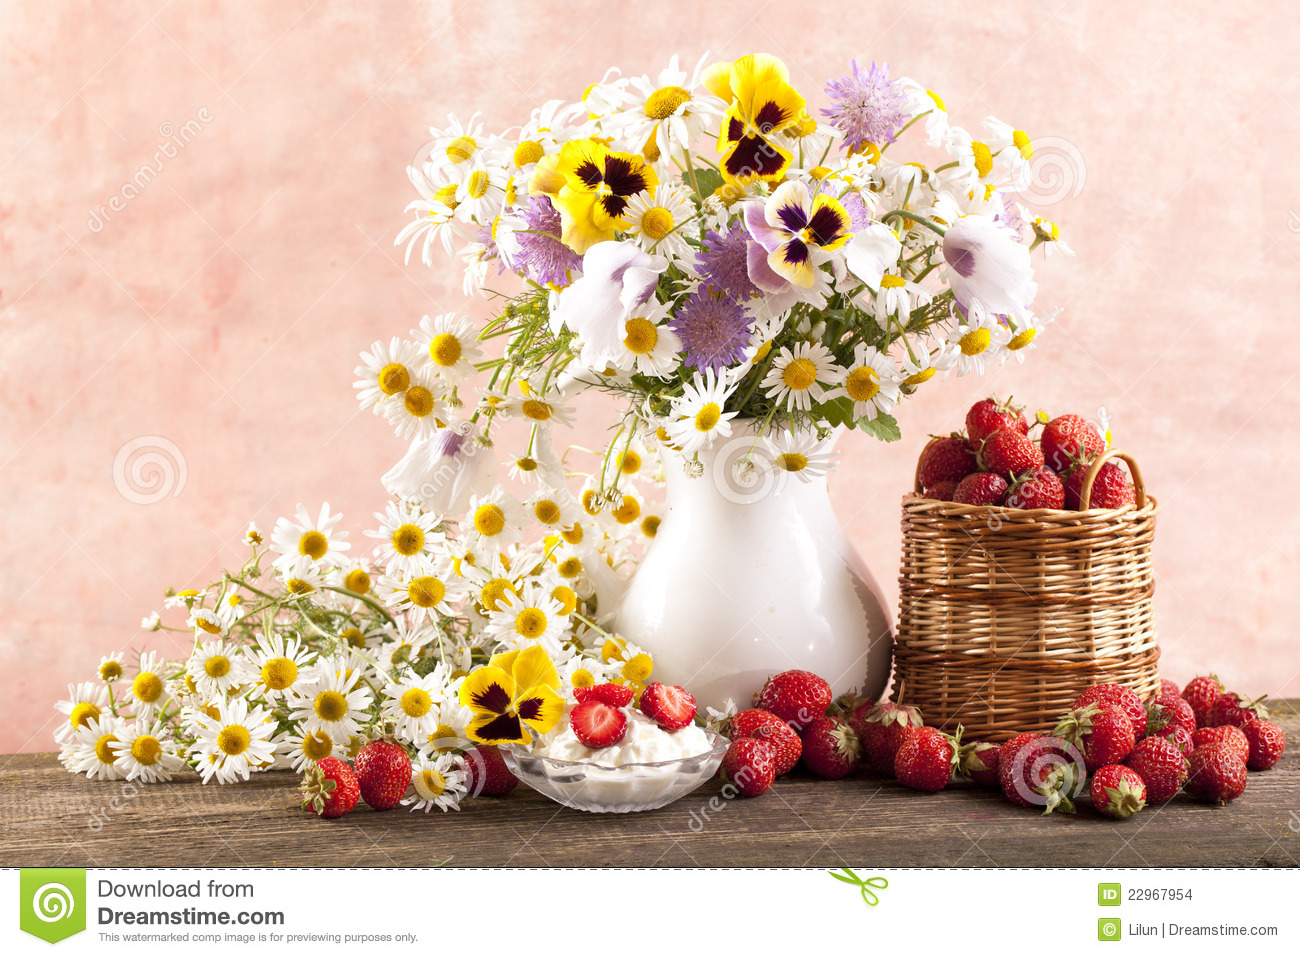 Strawberries And Bouquet Of Flowers Stock Photo - Image of beauty ...